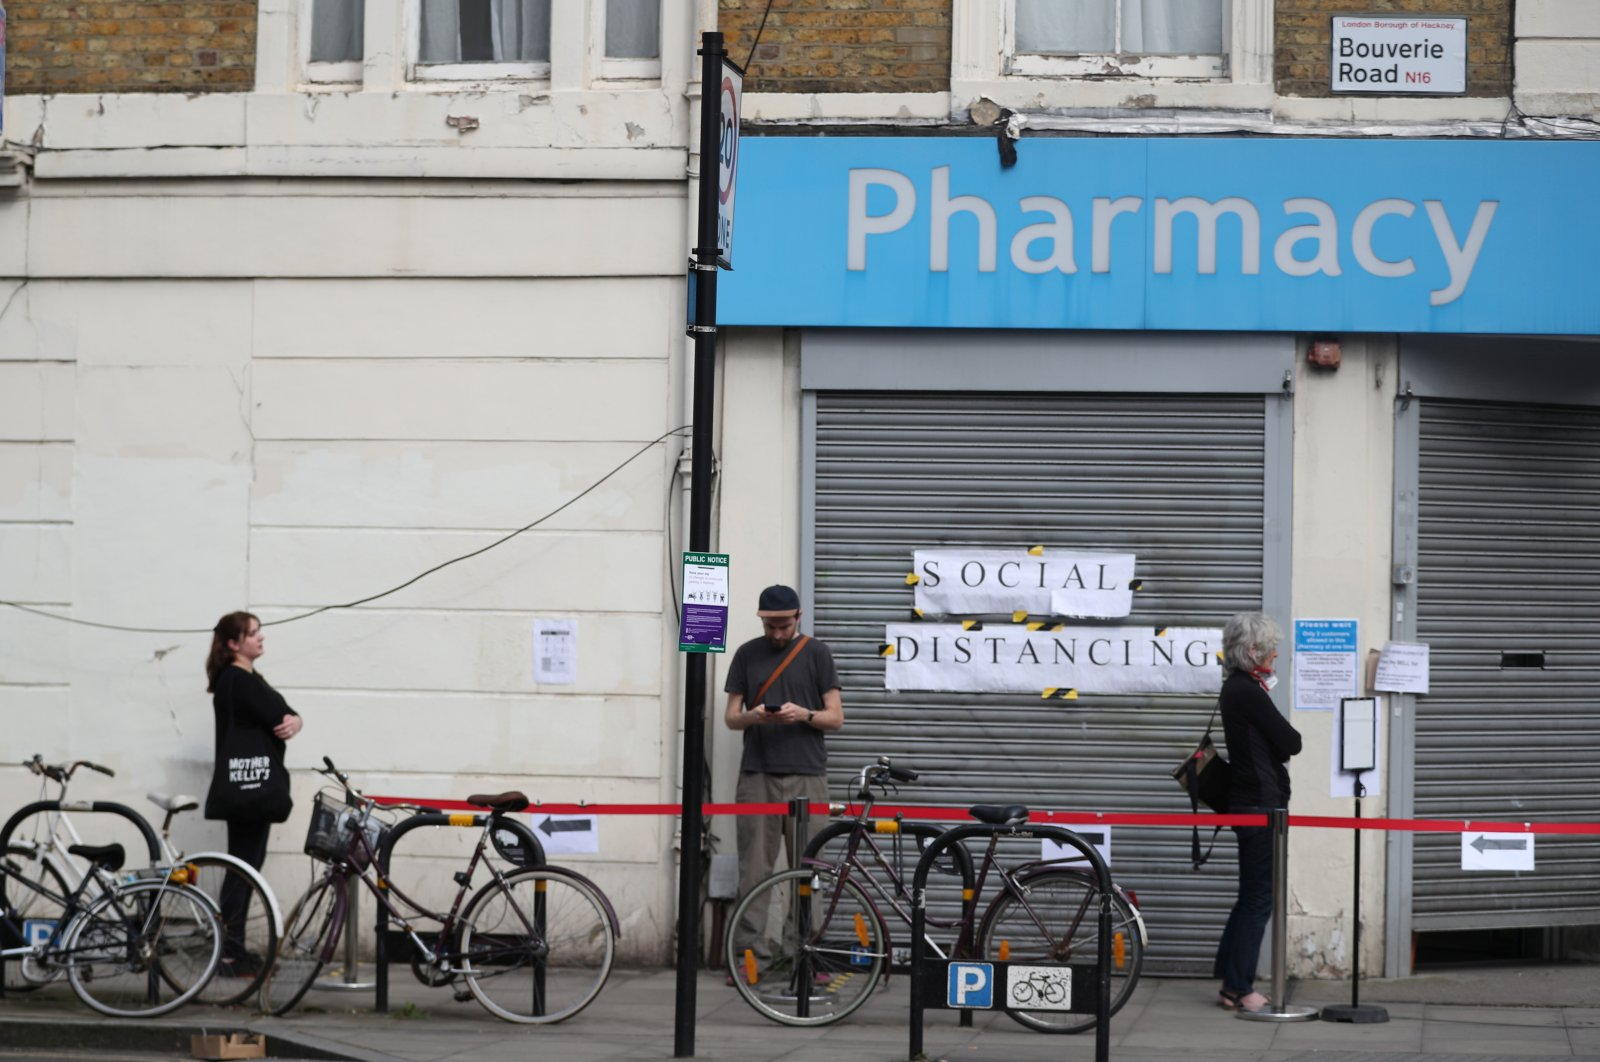 People are seen following social distancing rules as they queue outside a pharmacy in Stoke Newington, London, April 8, 2020. (REUTERS Photo)